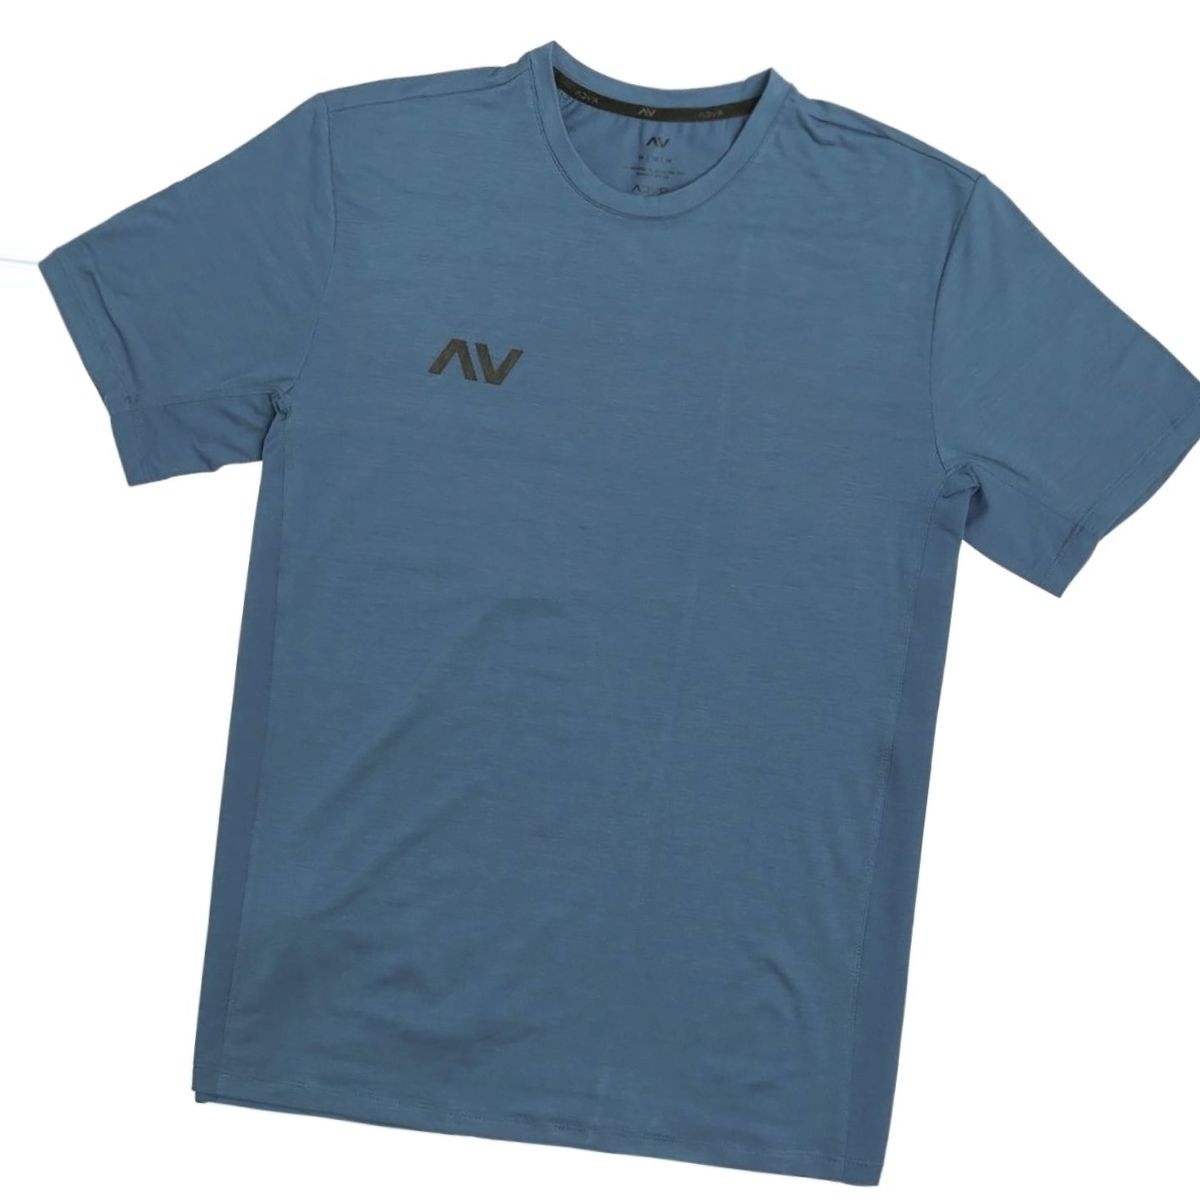 RVCA VA Vent Short-Sleeve Top - Men's